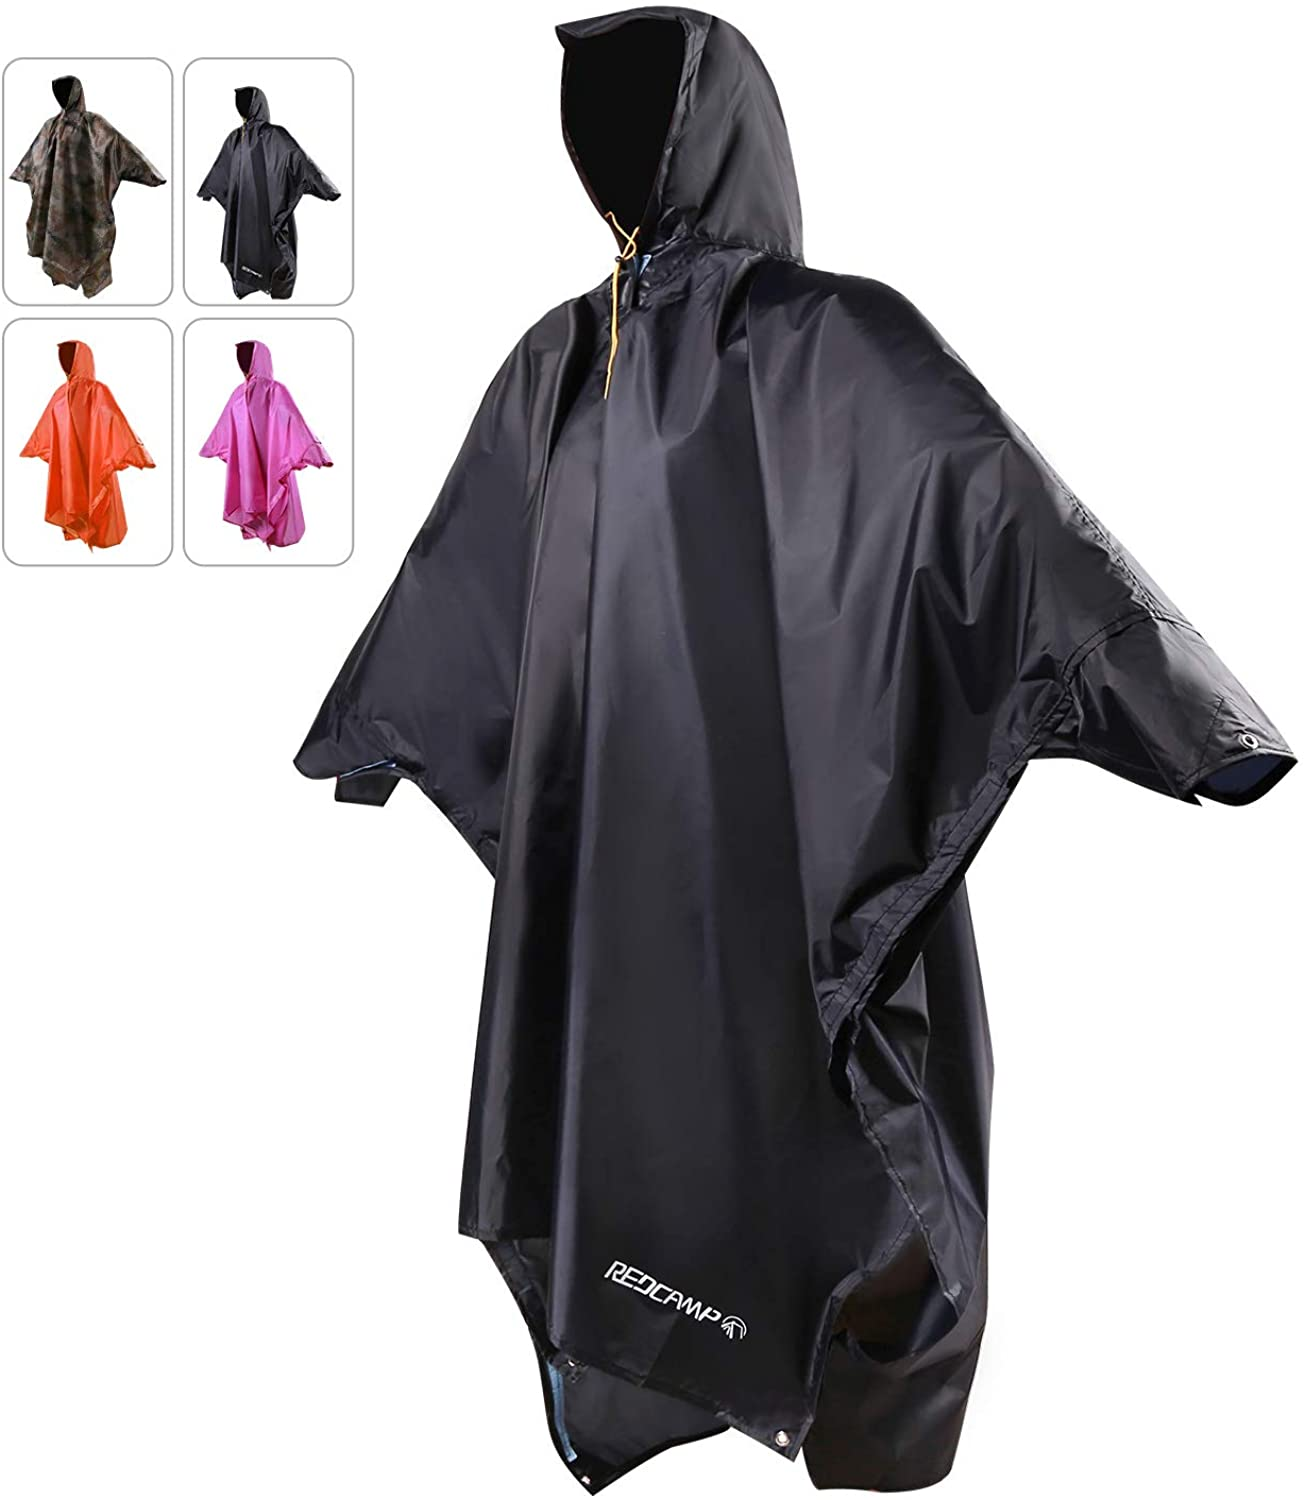 REDCAMP Waterproof Rain Poncho with Hood and Arms for Camping Hiking, 3 in 1 Multifunctional Lightweight Reusable Raincoat for Men Women Adults Kids